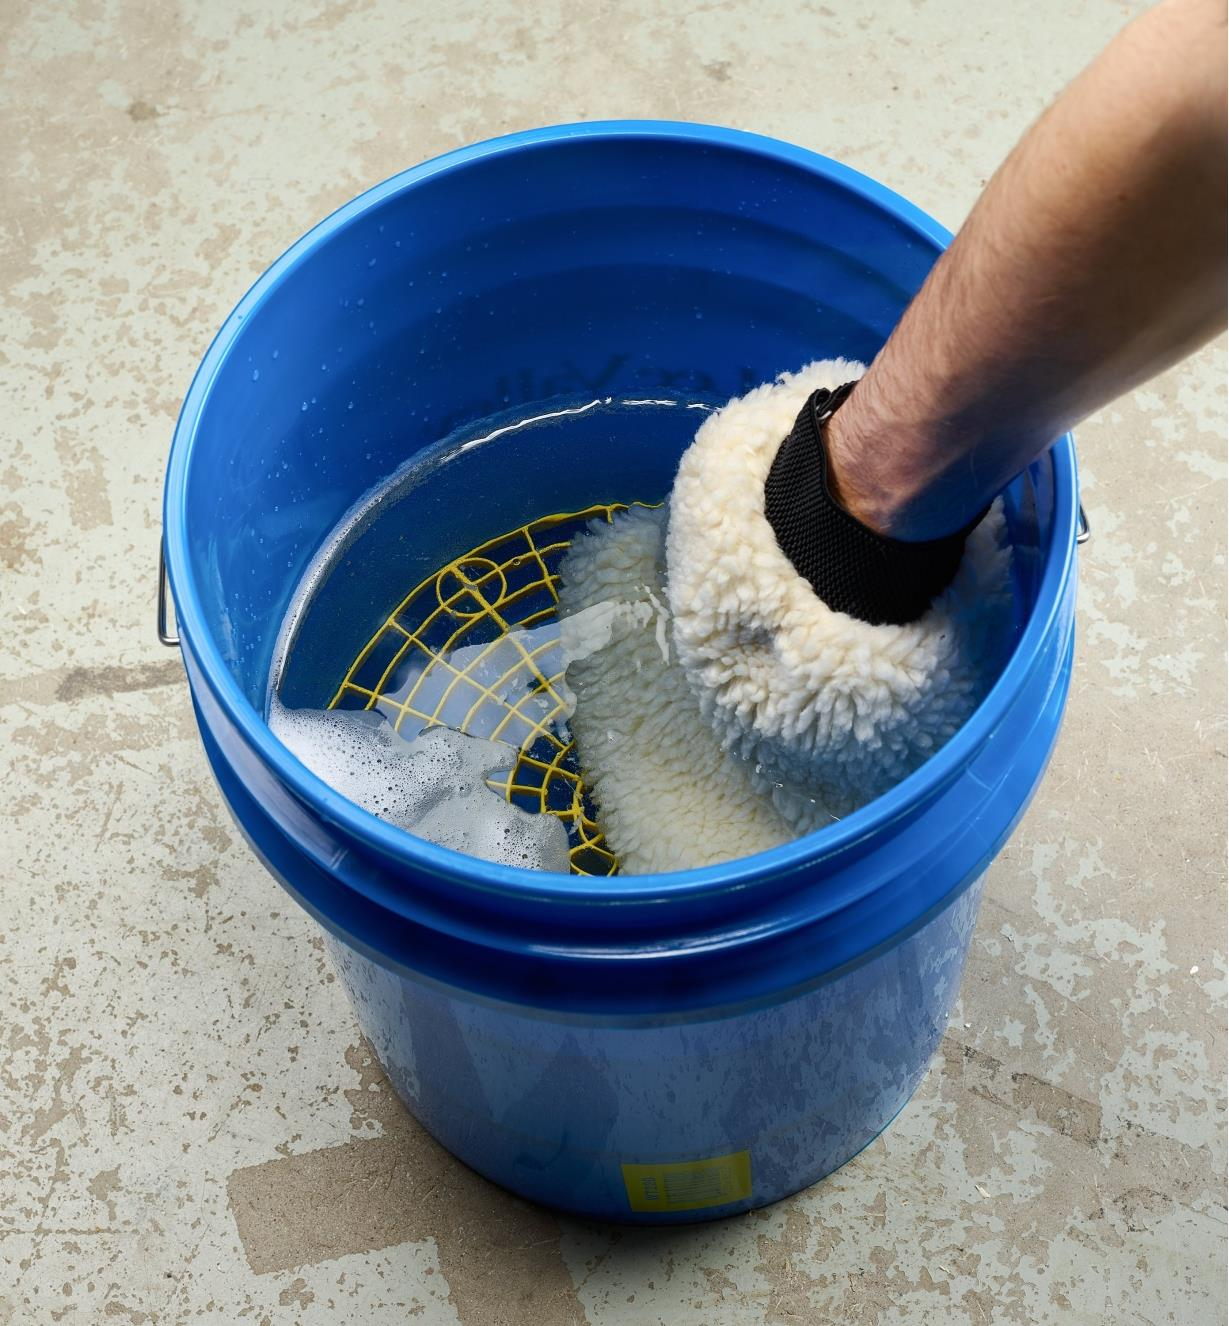 In a water-filled pail, a wash mitt is rubbed against the wash pail insert to loosen trapped grit